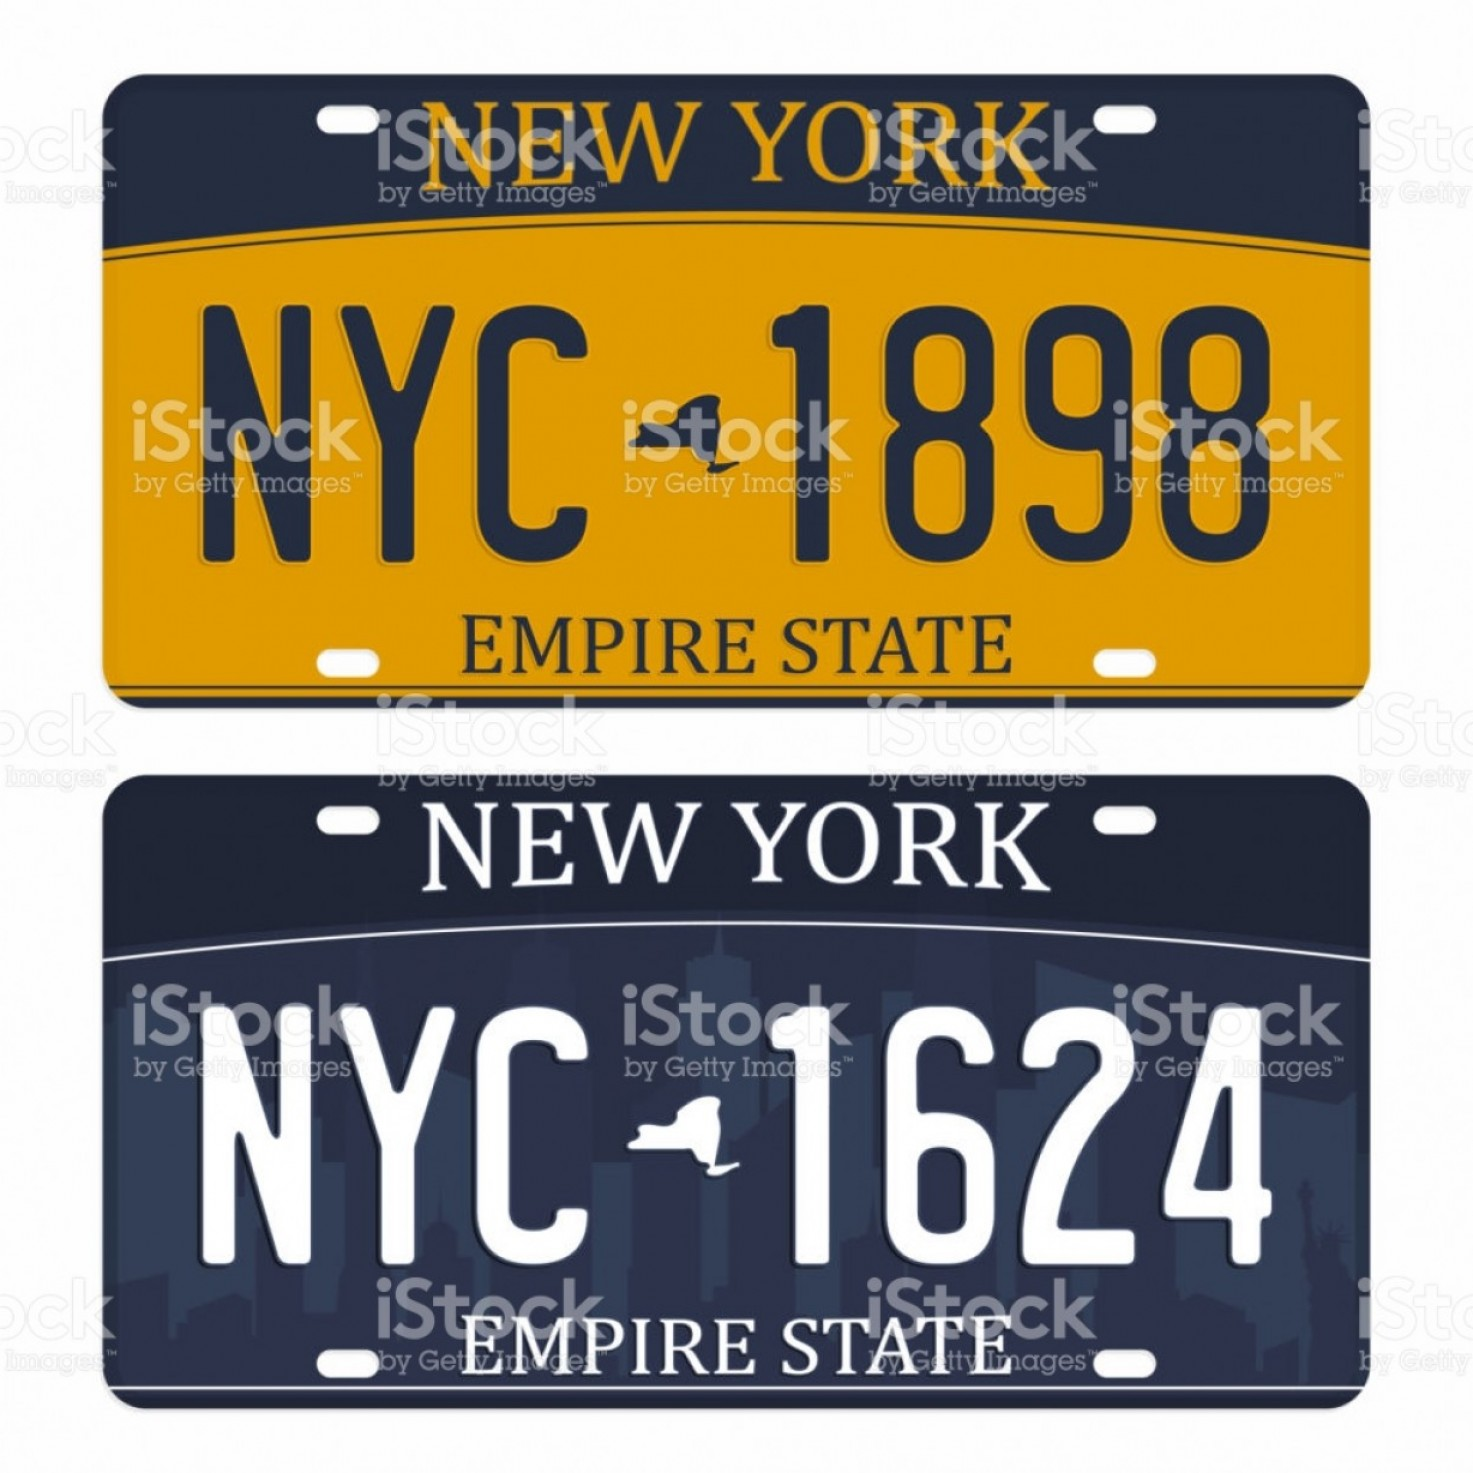 Motocross Number Plate Vector Art: License Plates Isolated On White Background New York License Plates With Numbers And Gm